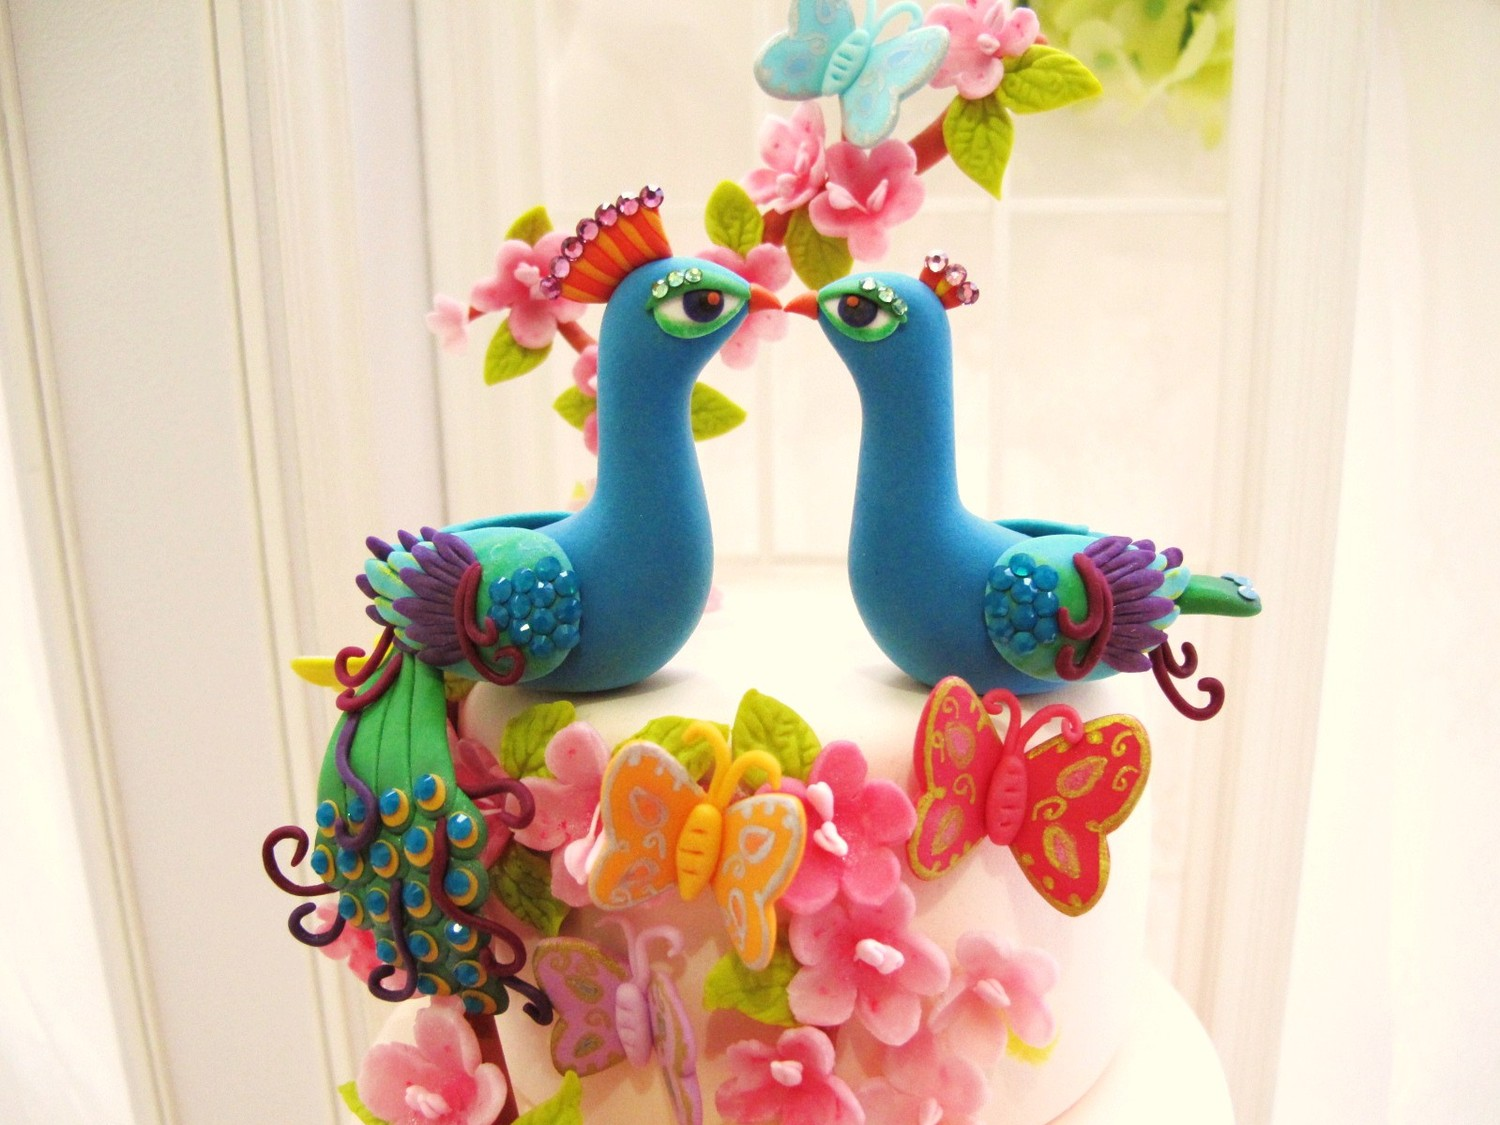 bright peacock wedding cake toppers | OneWed.com